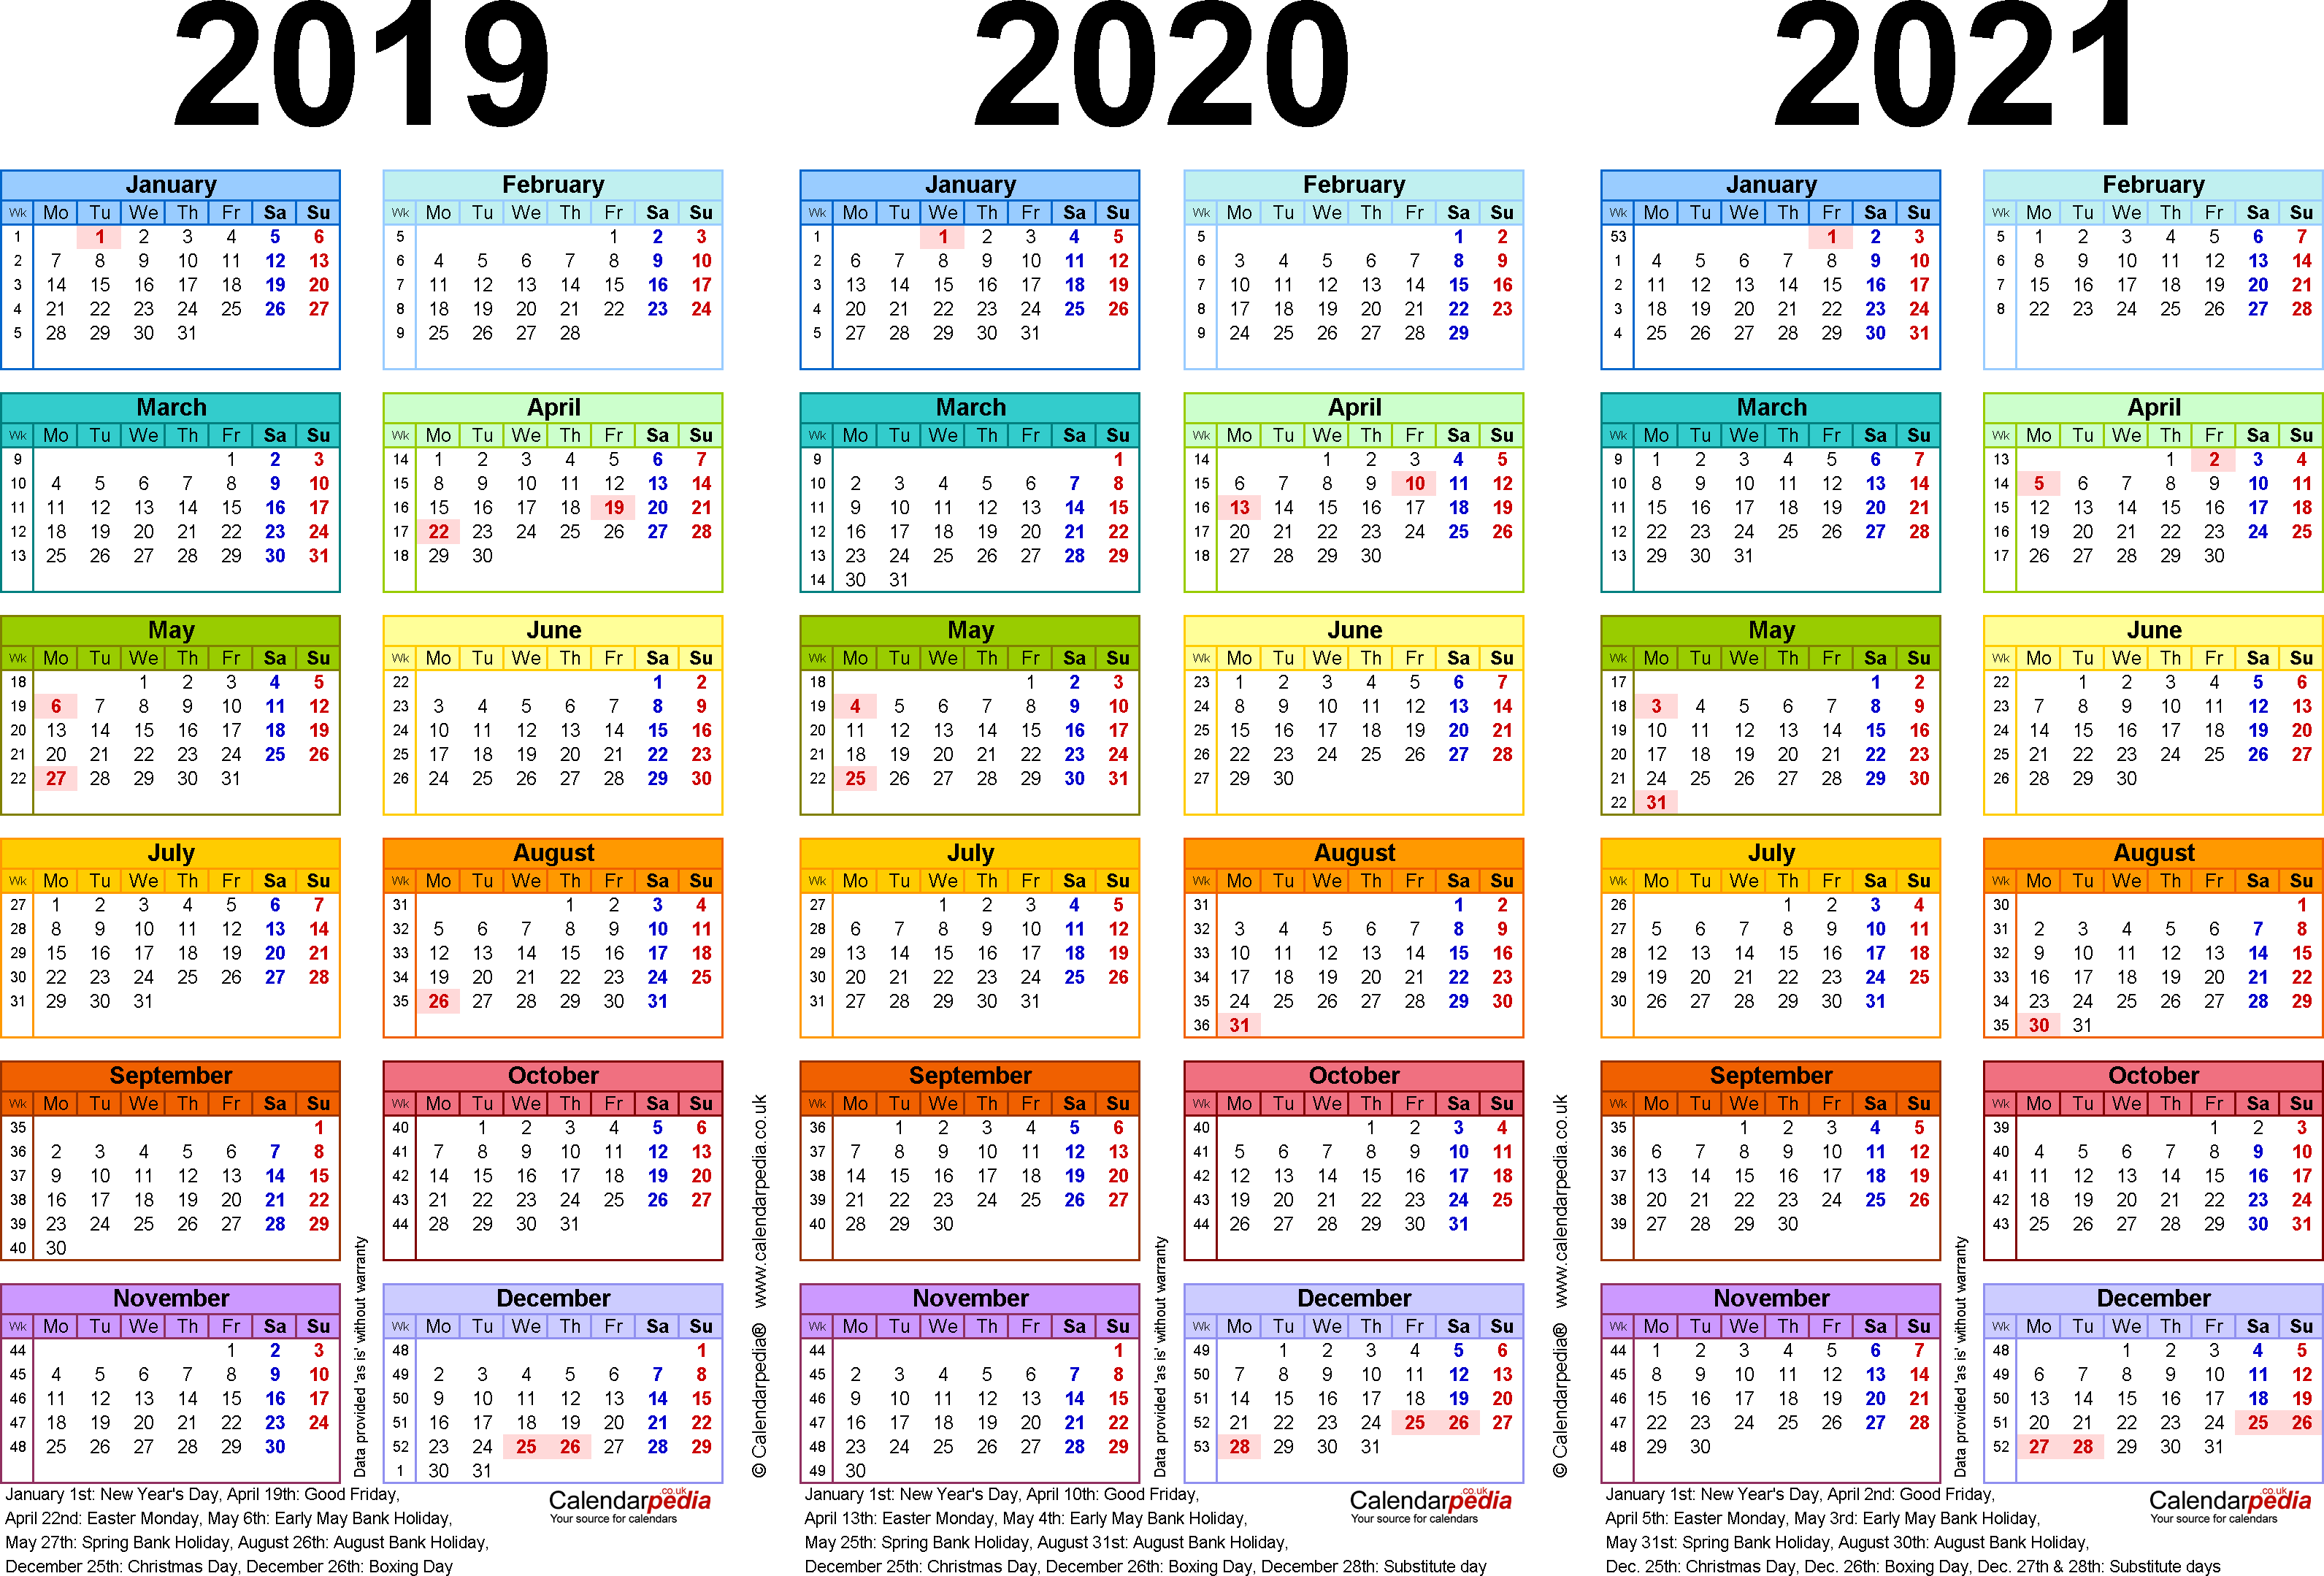 template 1 excel template for three year calendar 2019 2021 in colour landscape